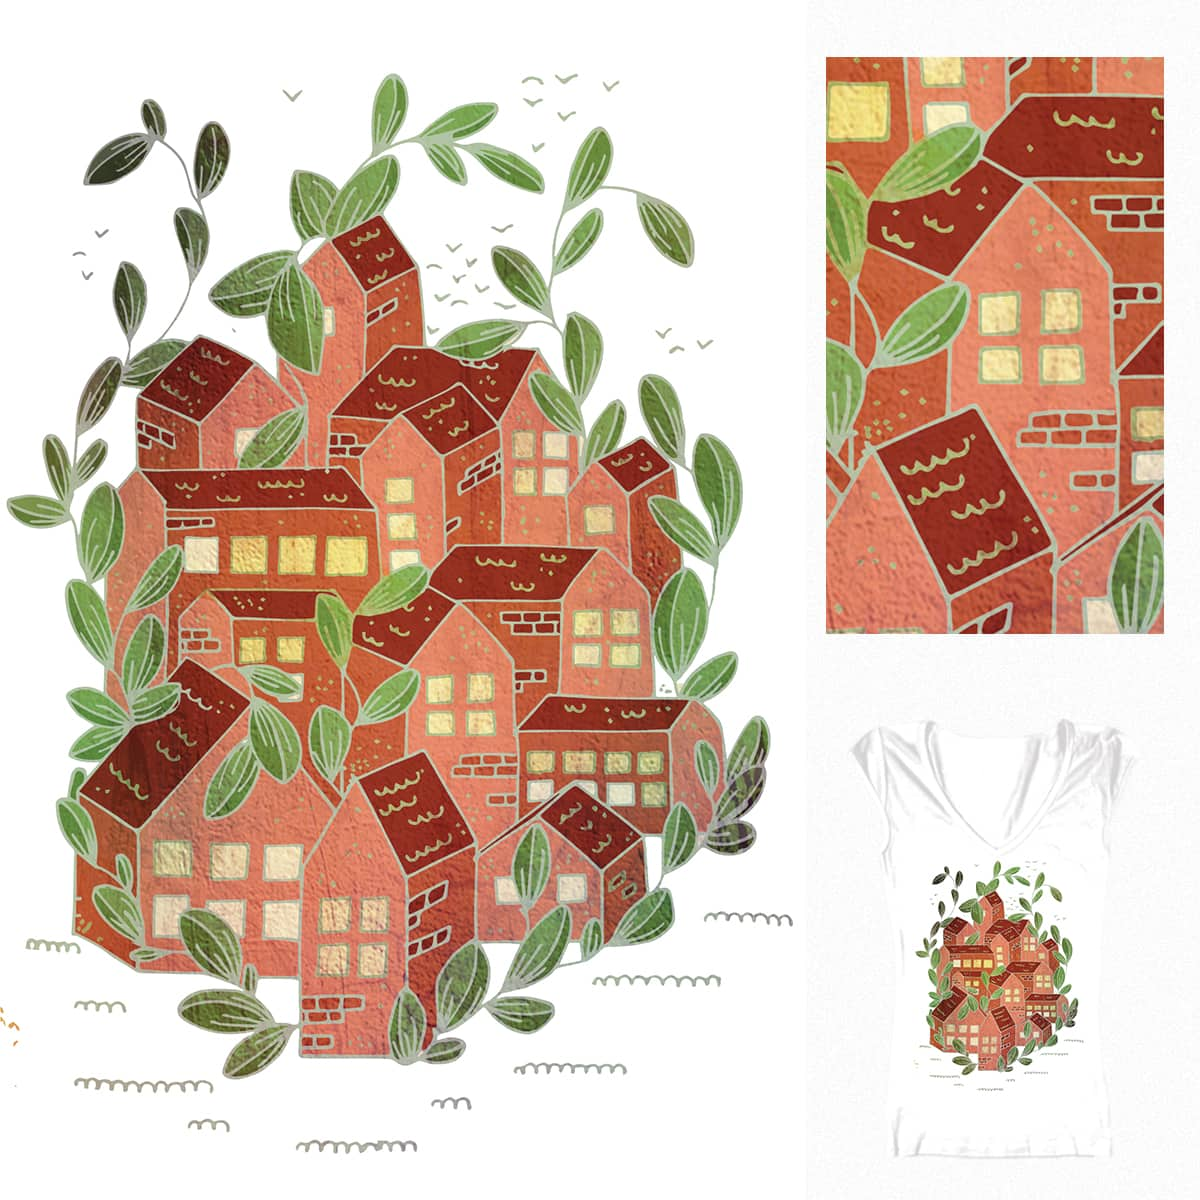 Plant village by Ingas on Threadless